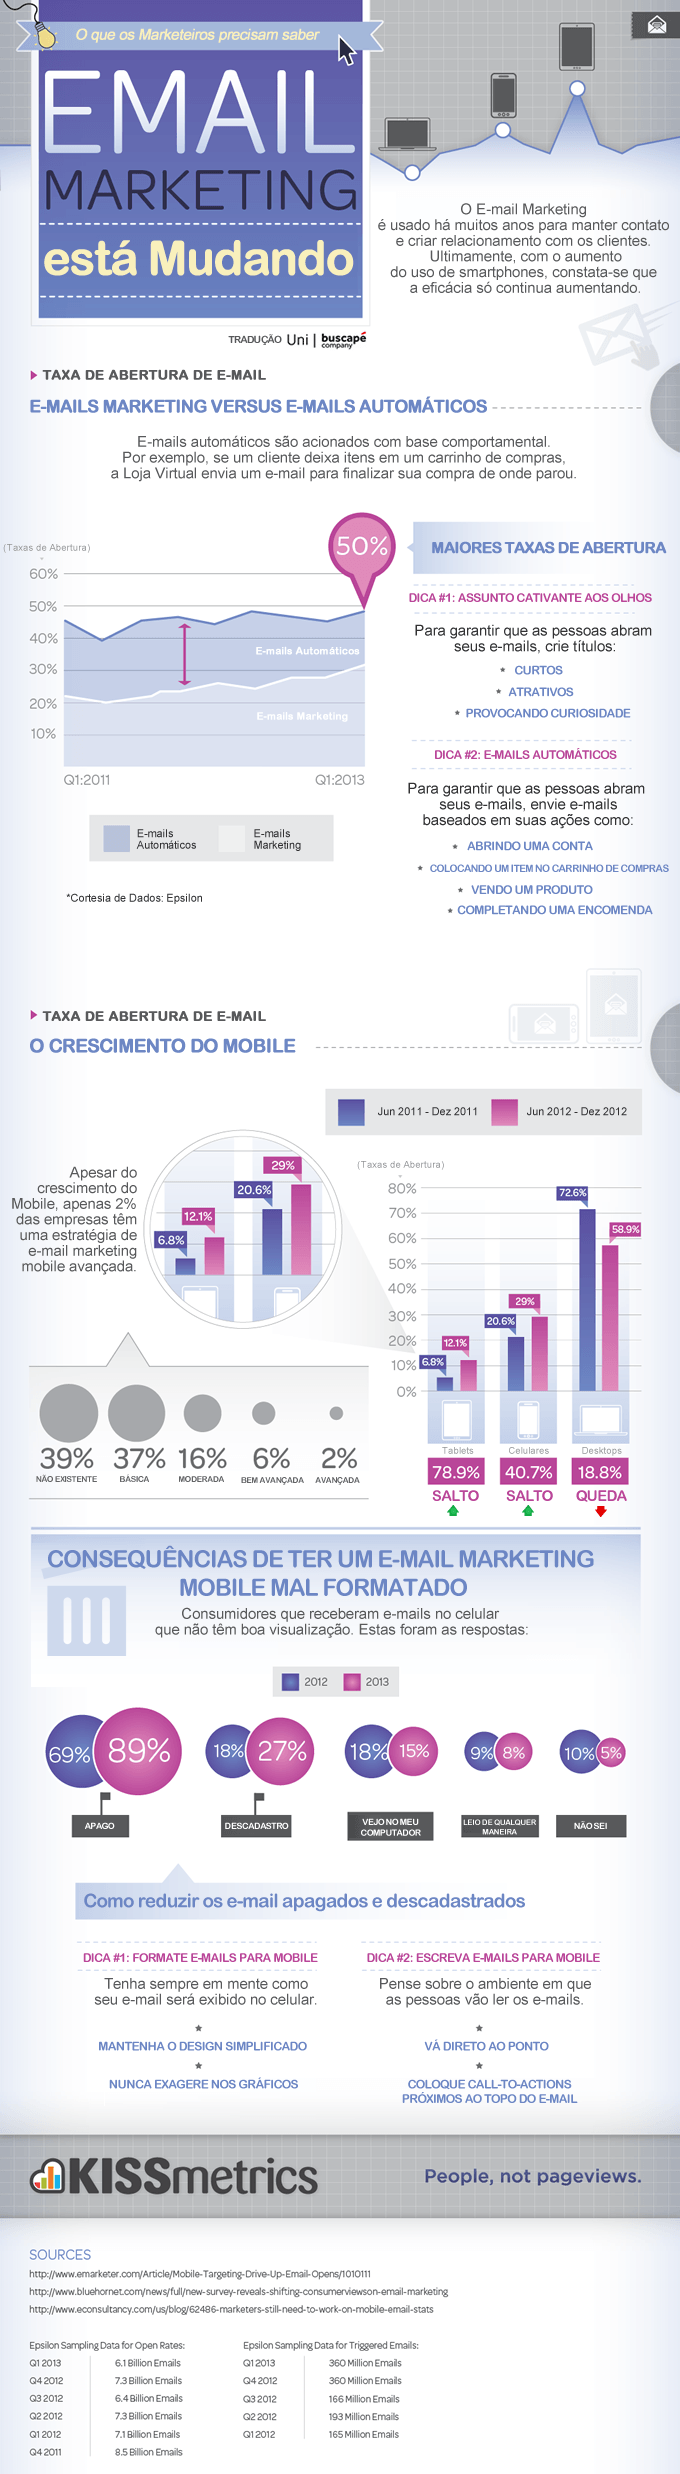 E-mail Marketing está mudando - O Crescimento do Mobile e dos E-mails Automáticos.